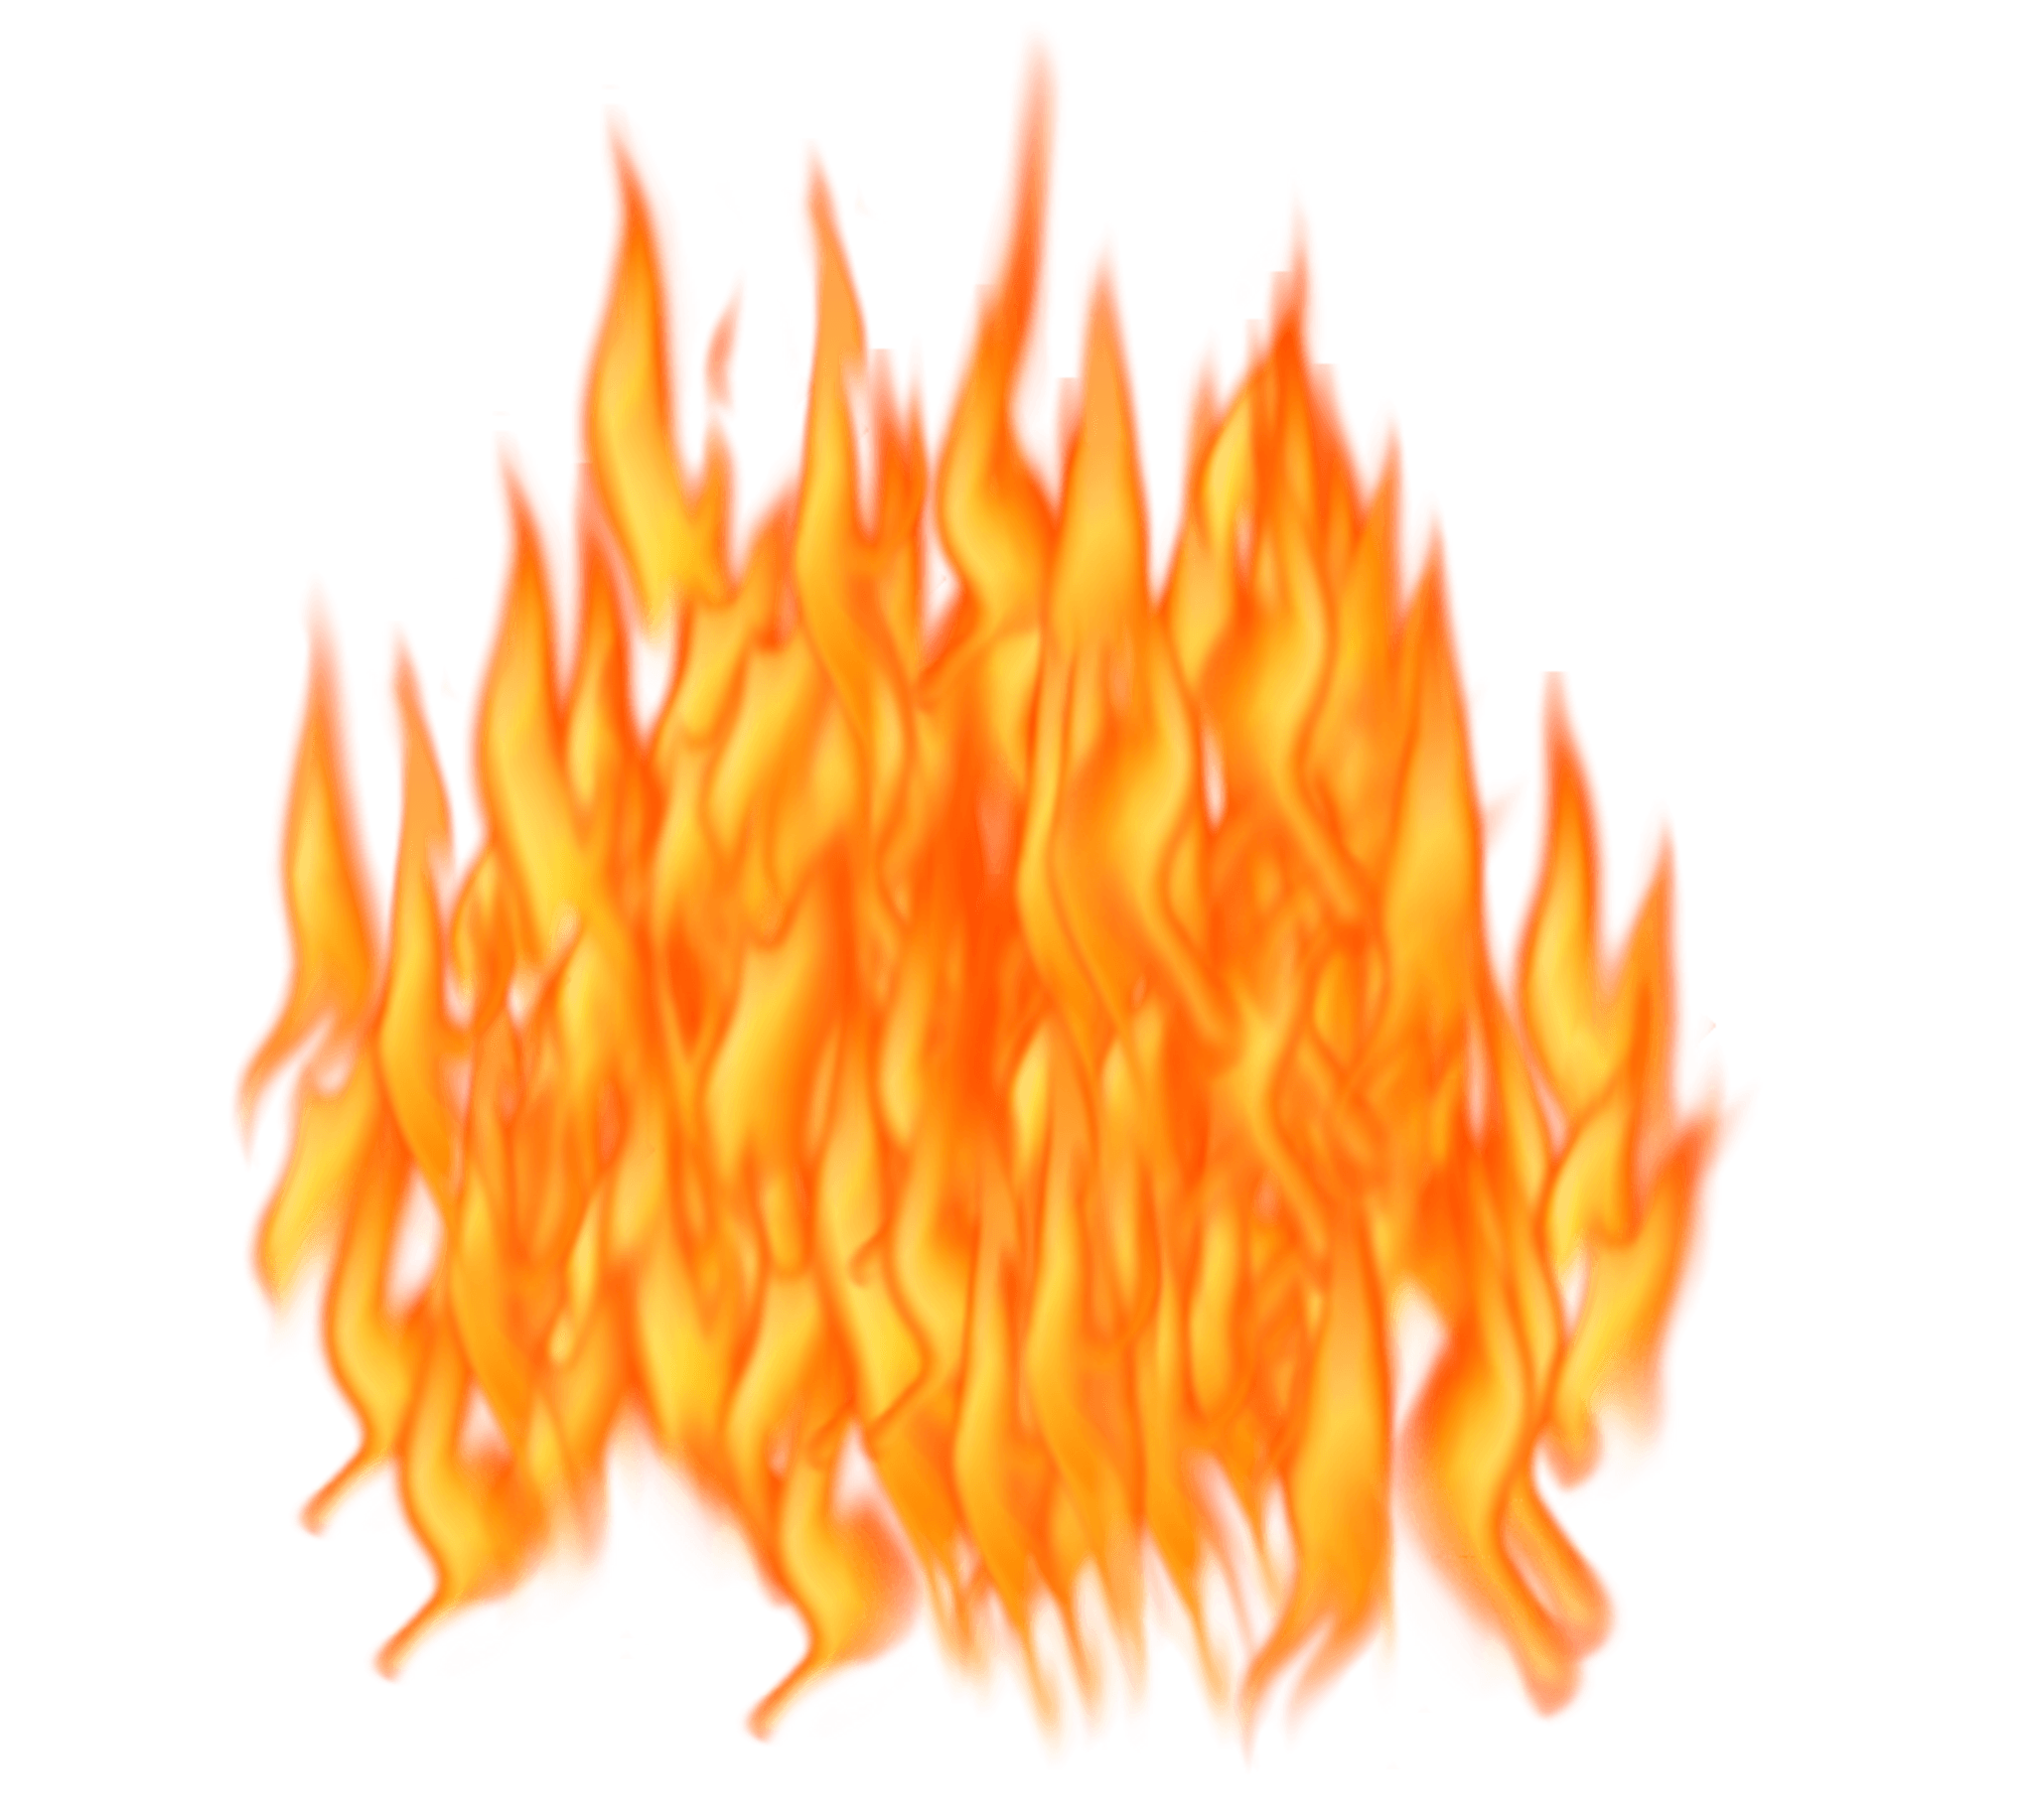 Flame Png Image Clip Art Fire Png Photo